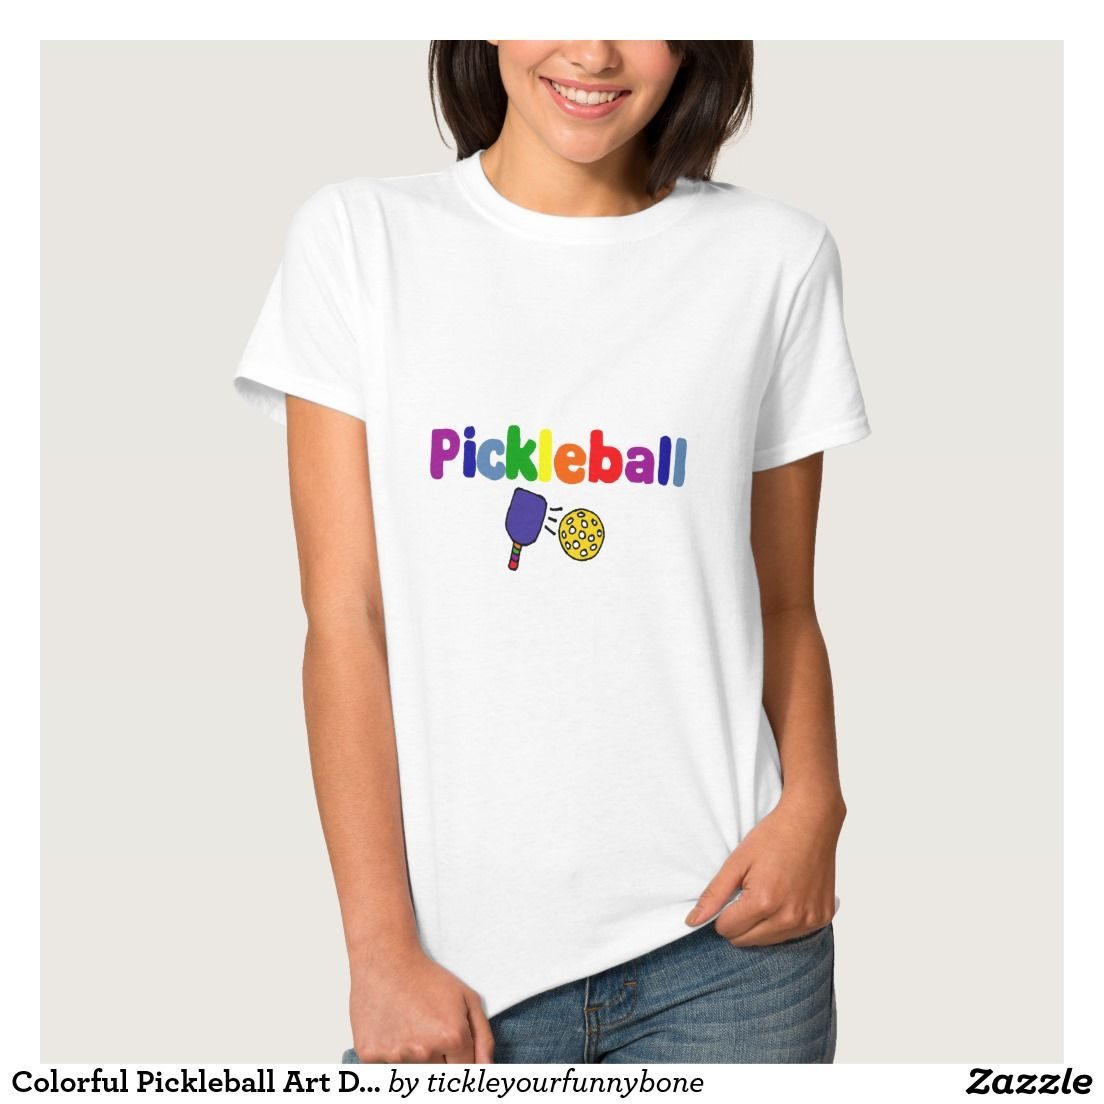 Design t shirt zazzle - Colorful Pickleball Art Design T Shirt